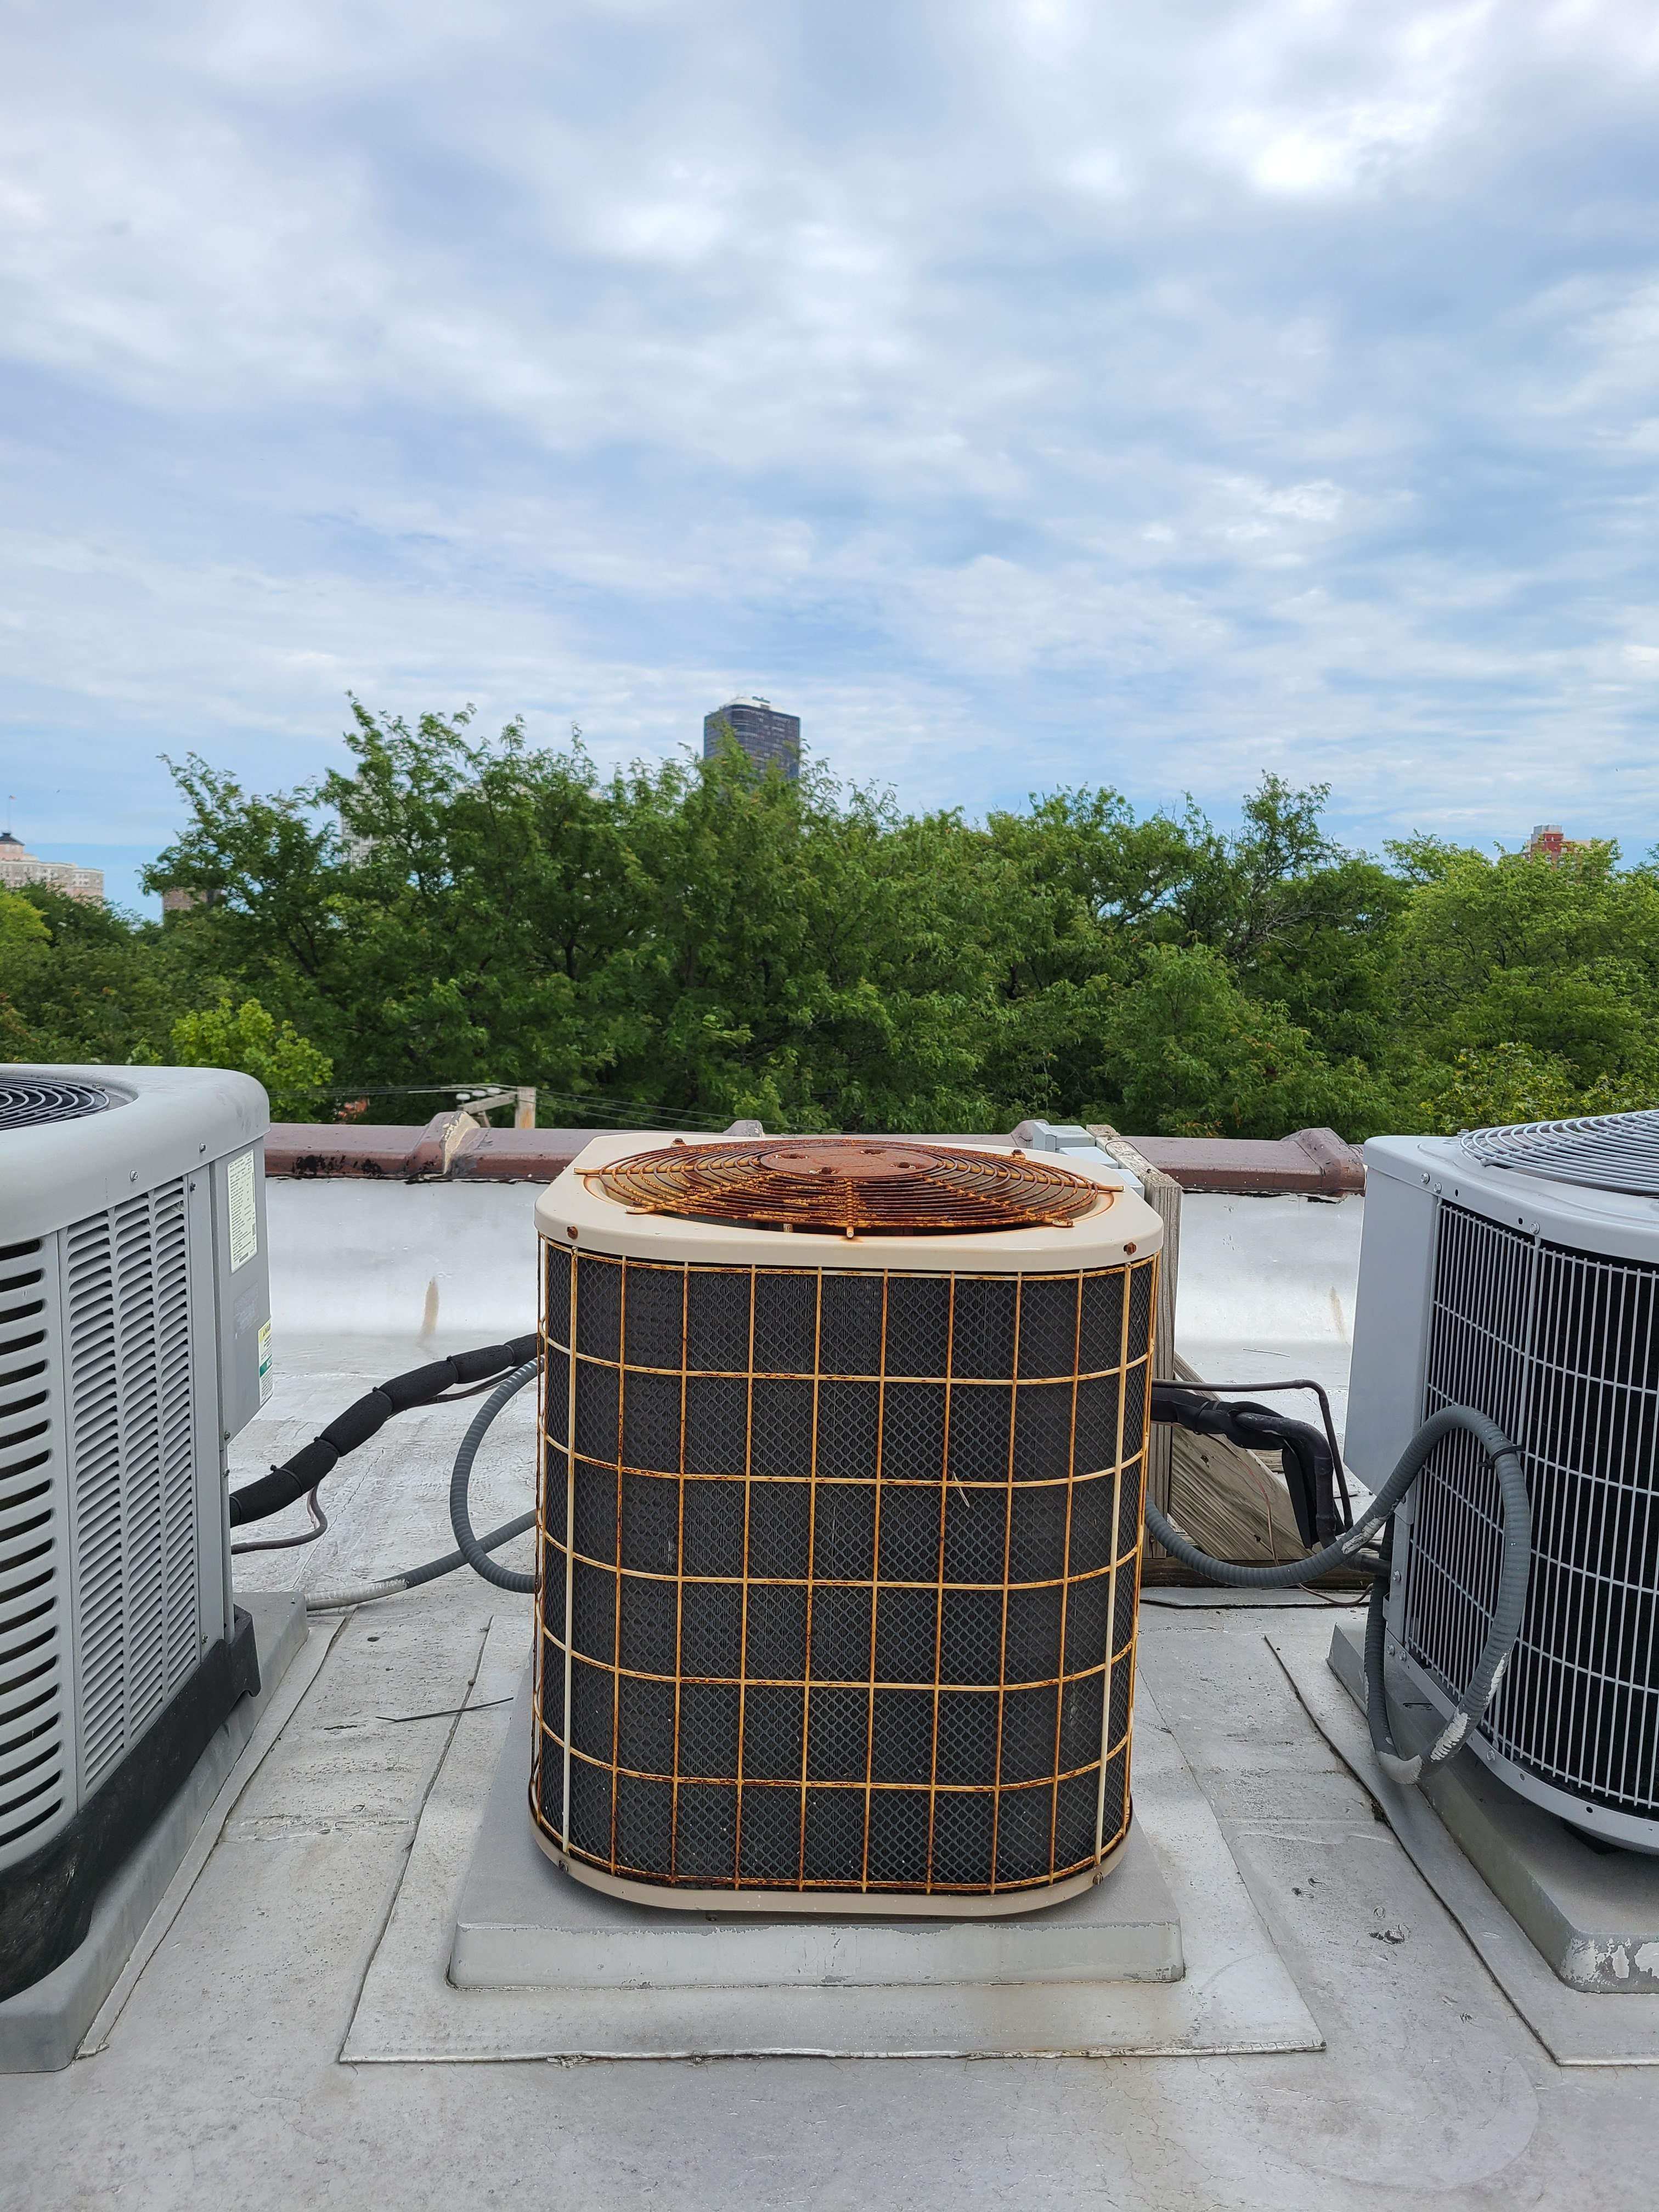 Photo of luxaire condenser holding on strong!